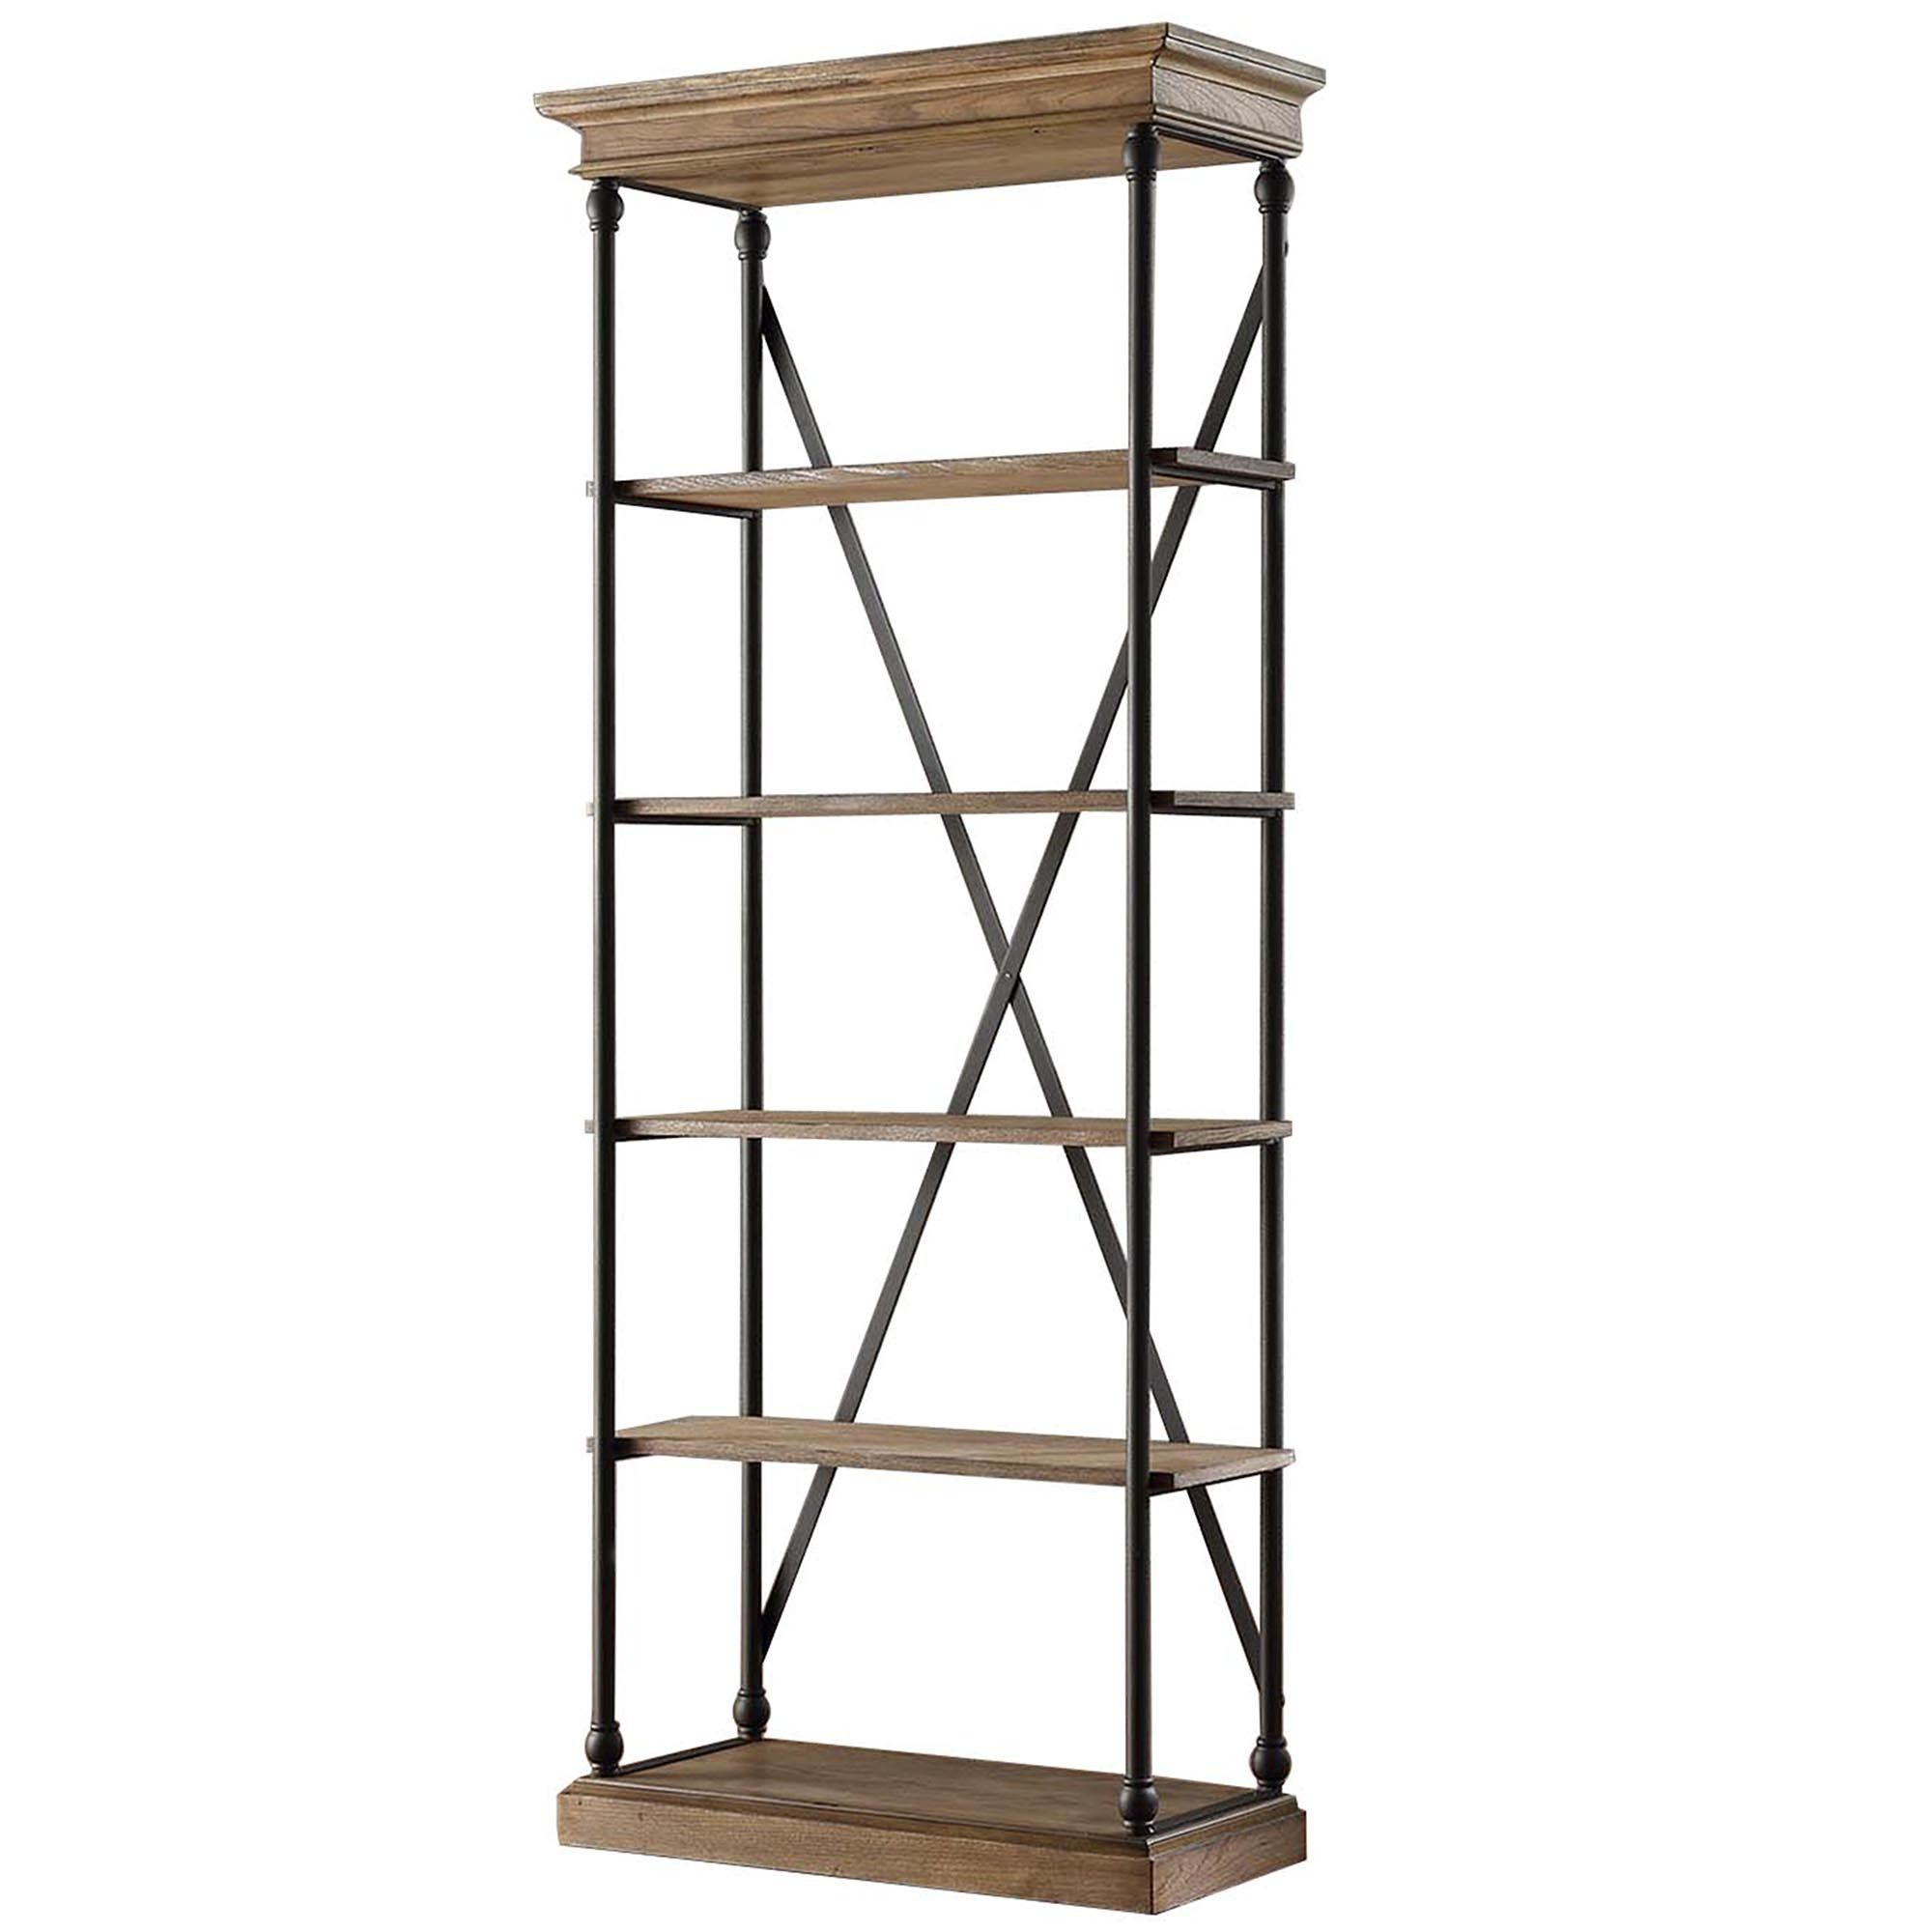 Etagere Bookcase (Gallery 15 of 20)